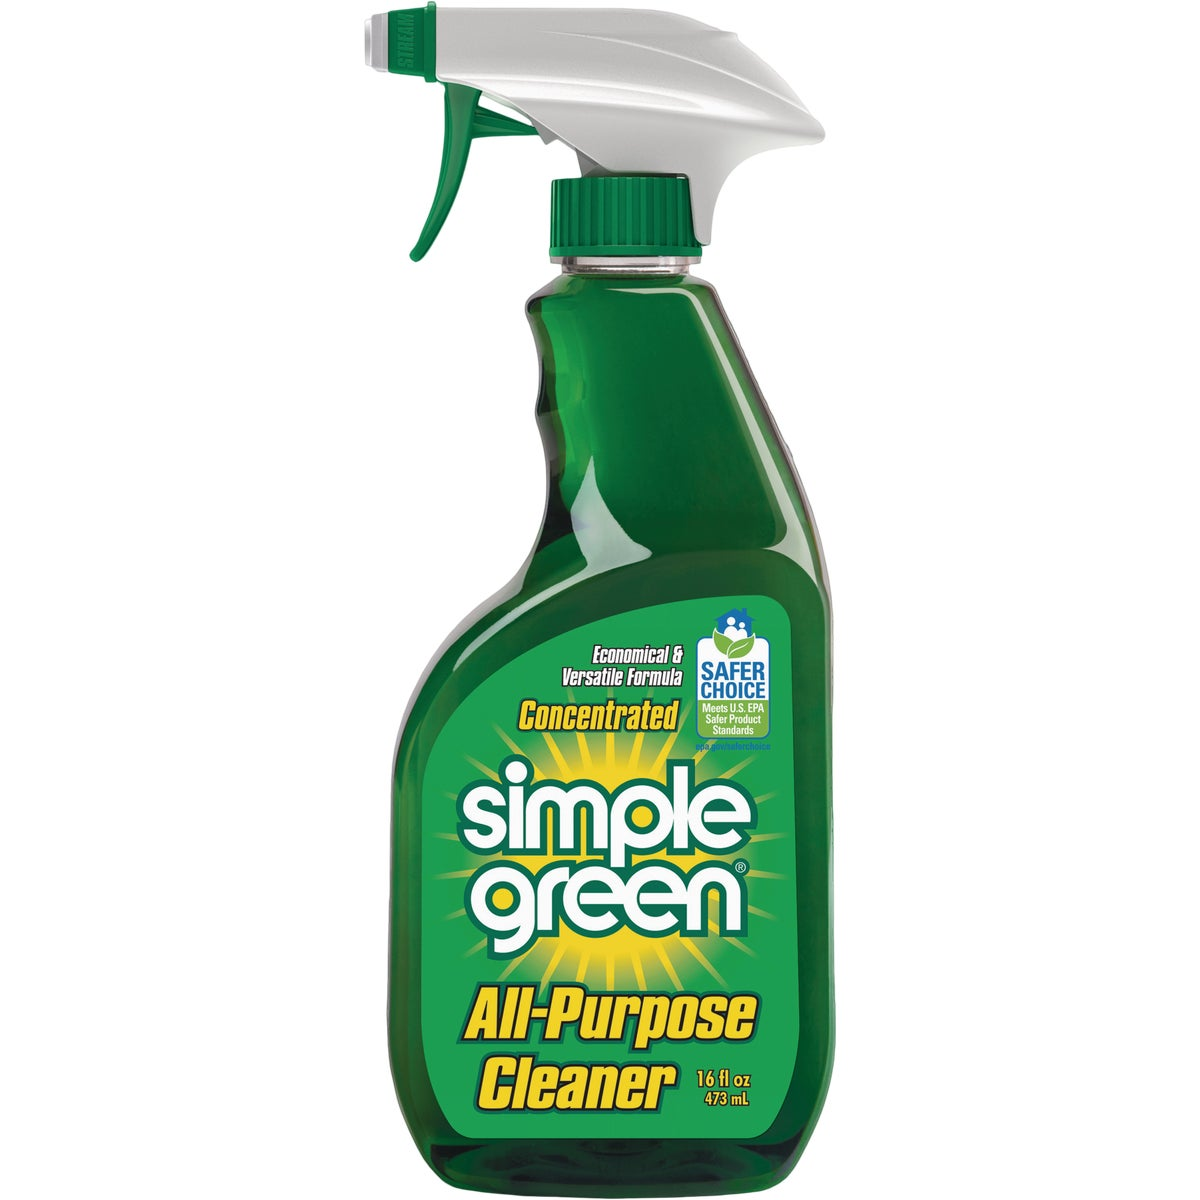 16OZ CLEANER/DEGREASER - 2710001213002 by Sunshine Makers Inc